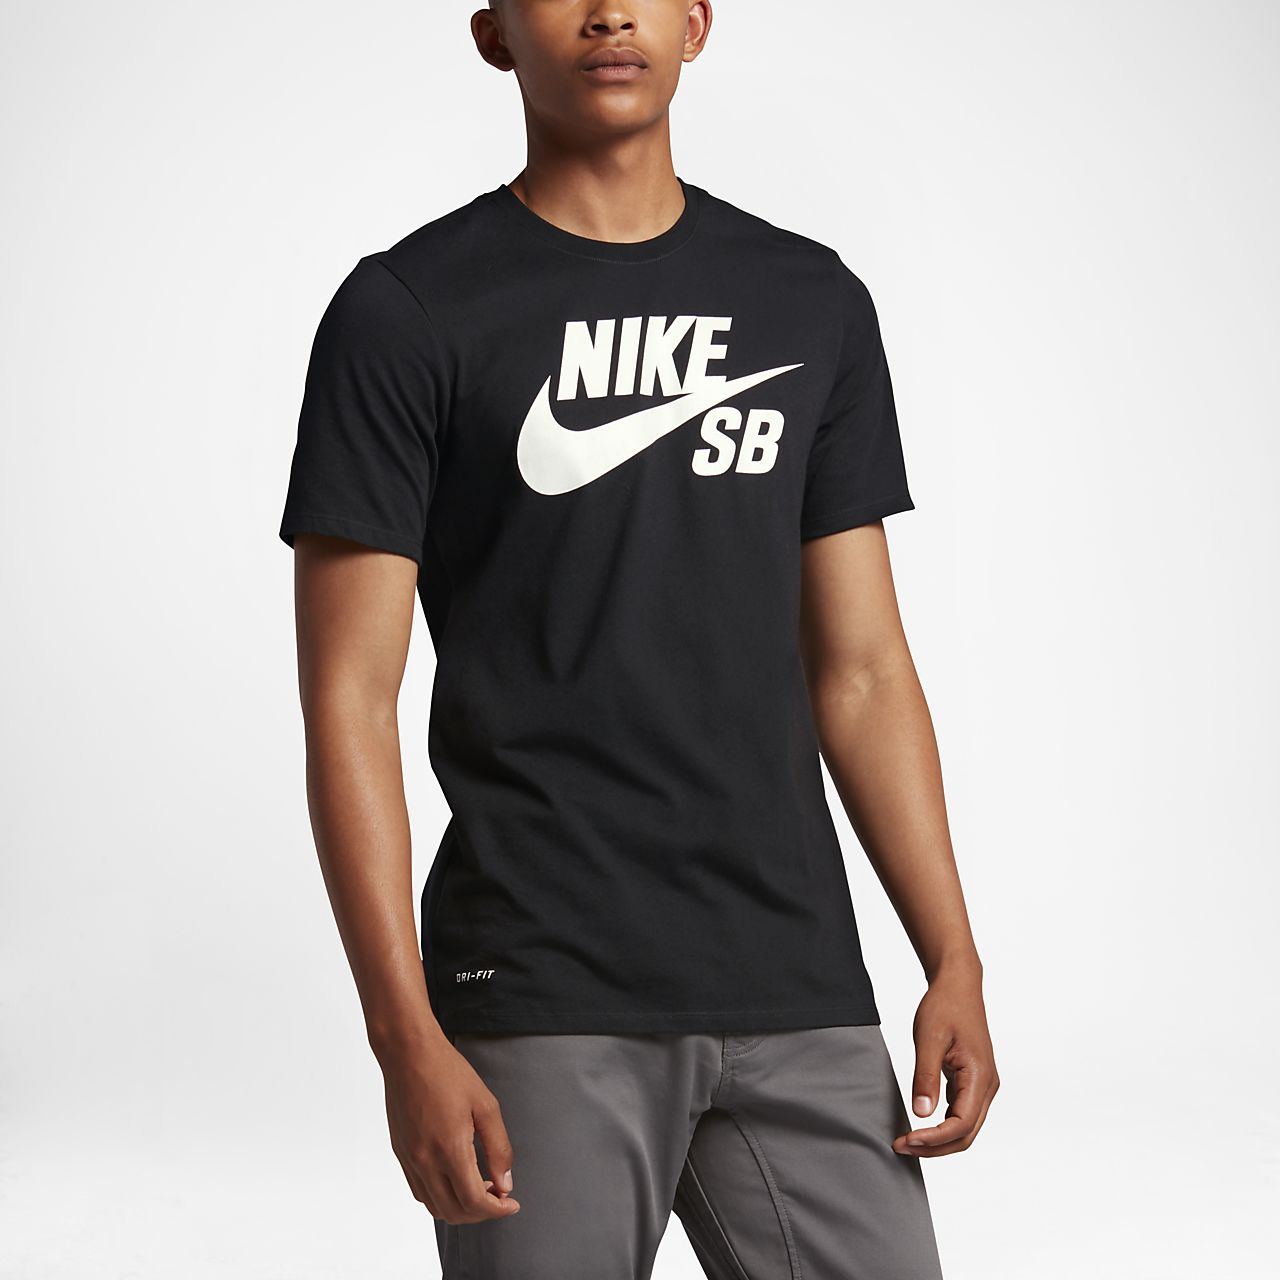 Nike sb logo men 39 s t shirt ma for Nike flyknit t shirt